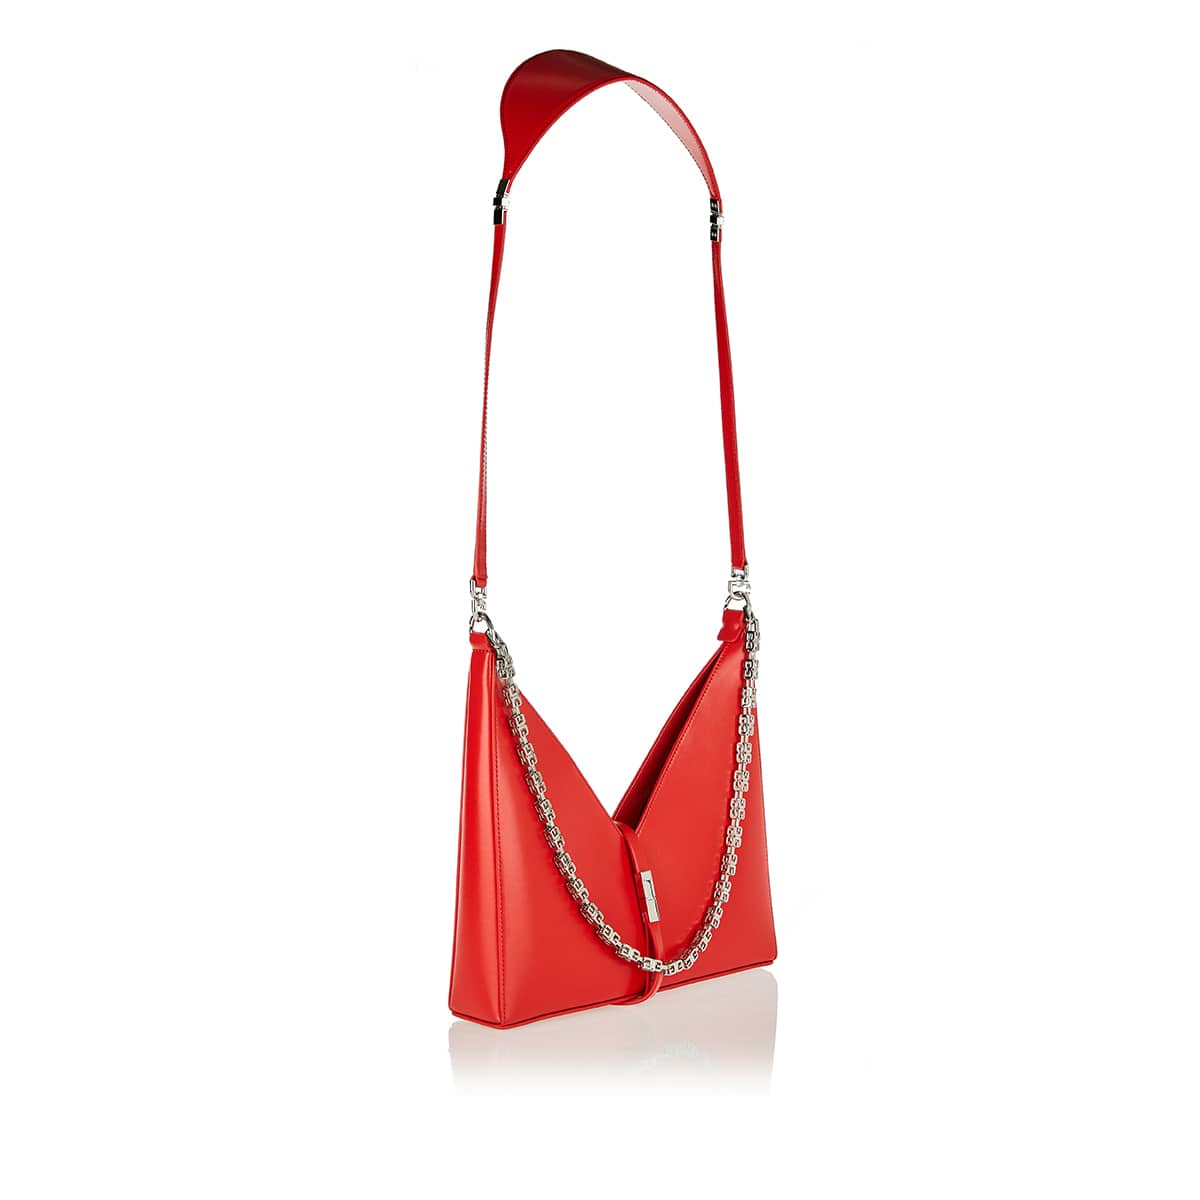 Cut Out small leather bag